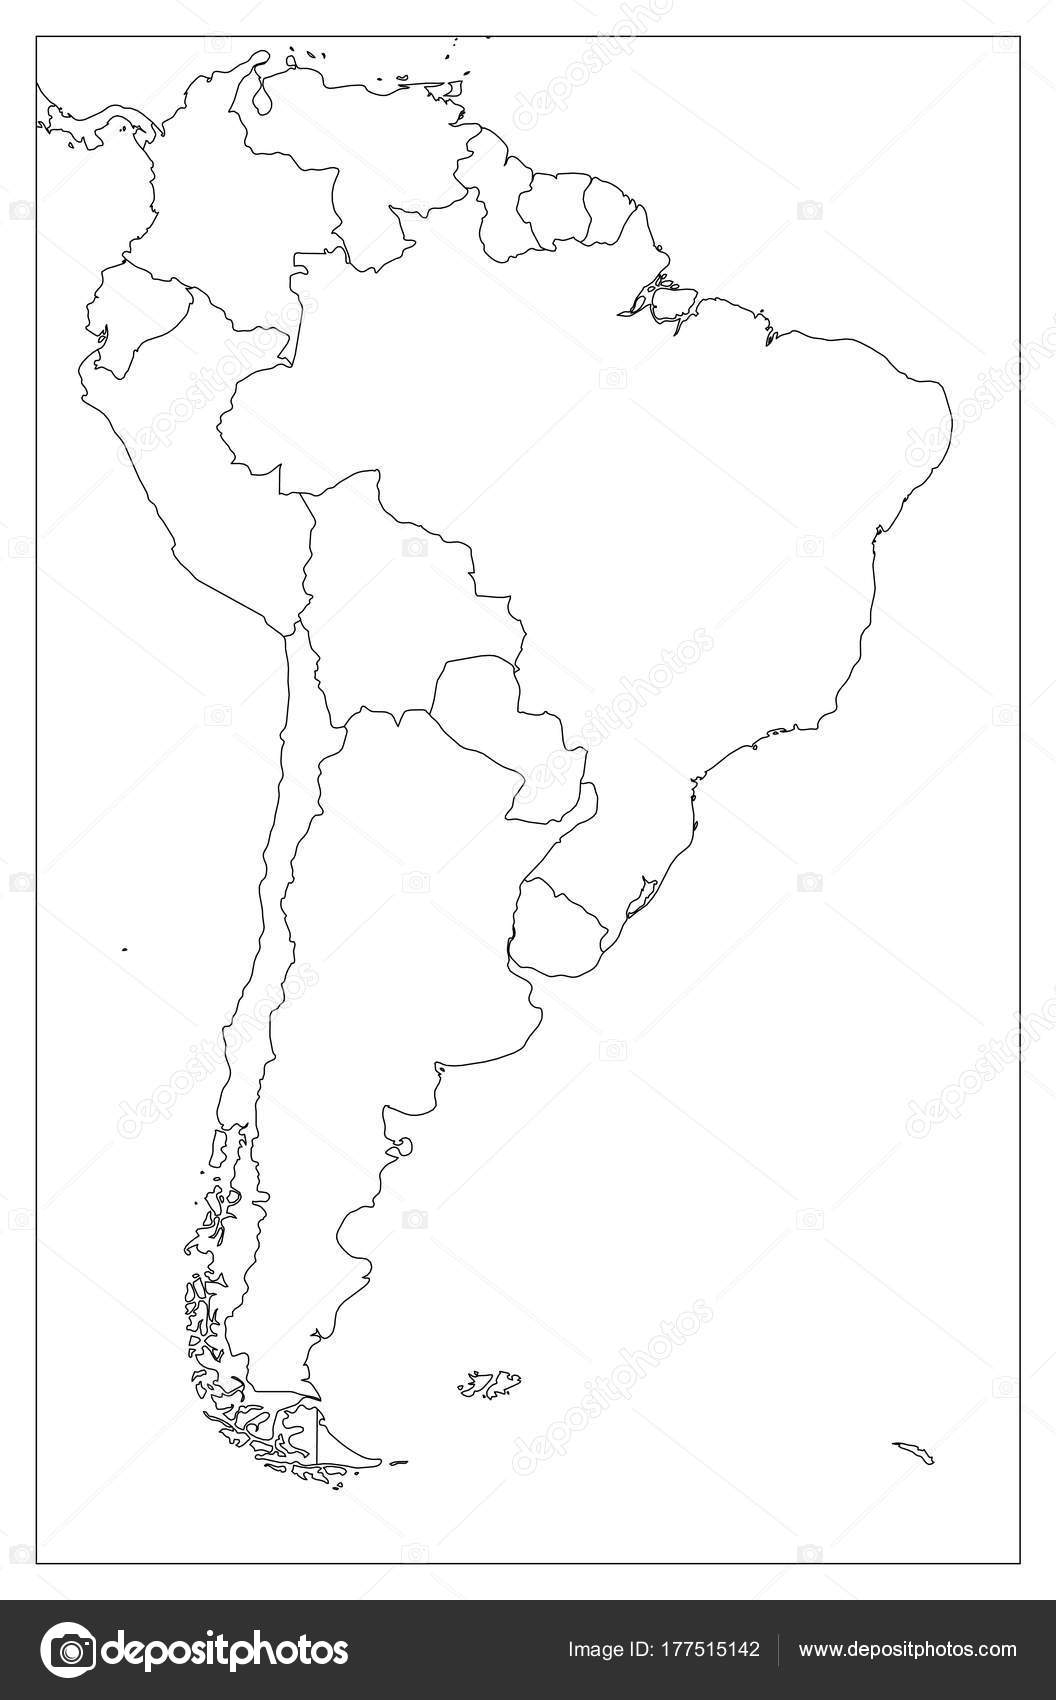 Blank political map of South America. Simple flat vector outline